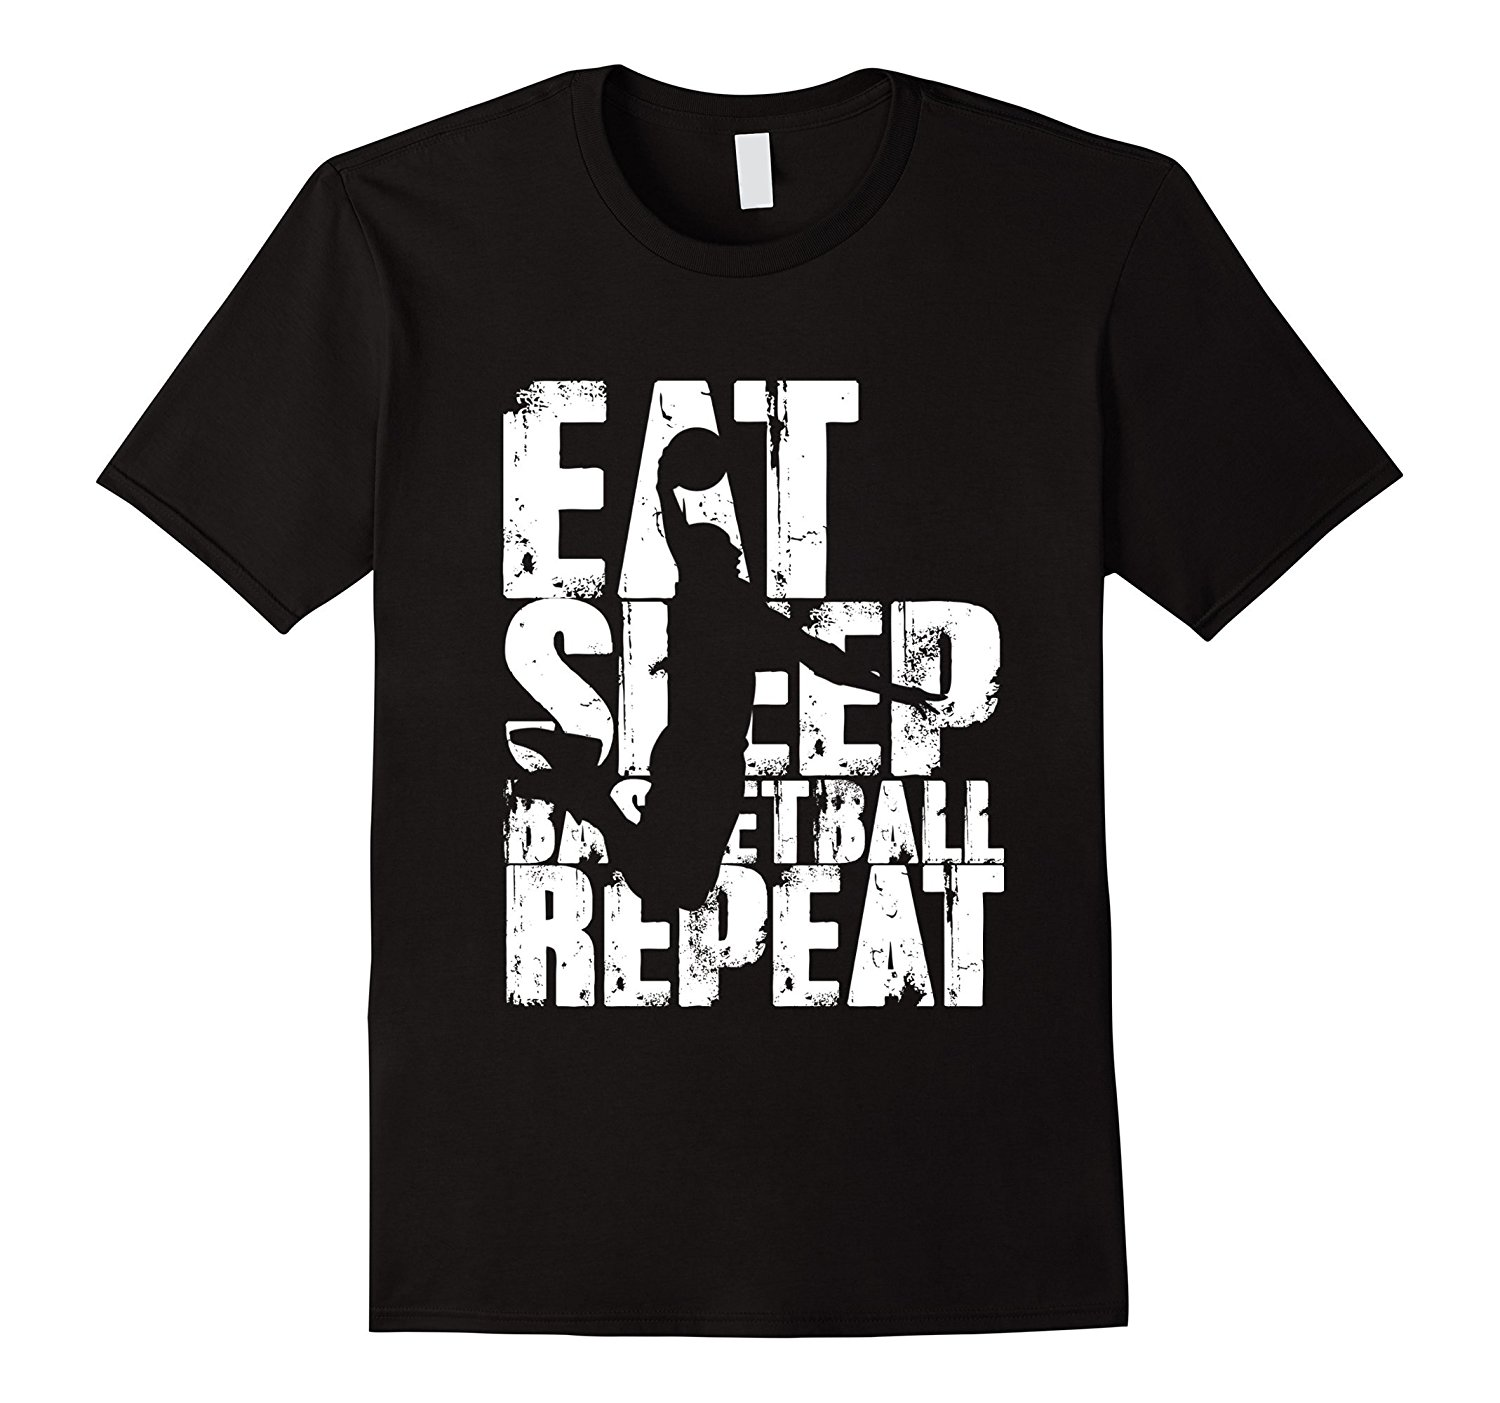 Eat Sleep Basketballer Repeat T-Shirt Gift for BBall Lovers Cotton T-Shirt Fashion T Shirt Free Shipping Simple Style